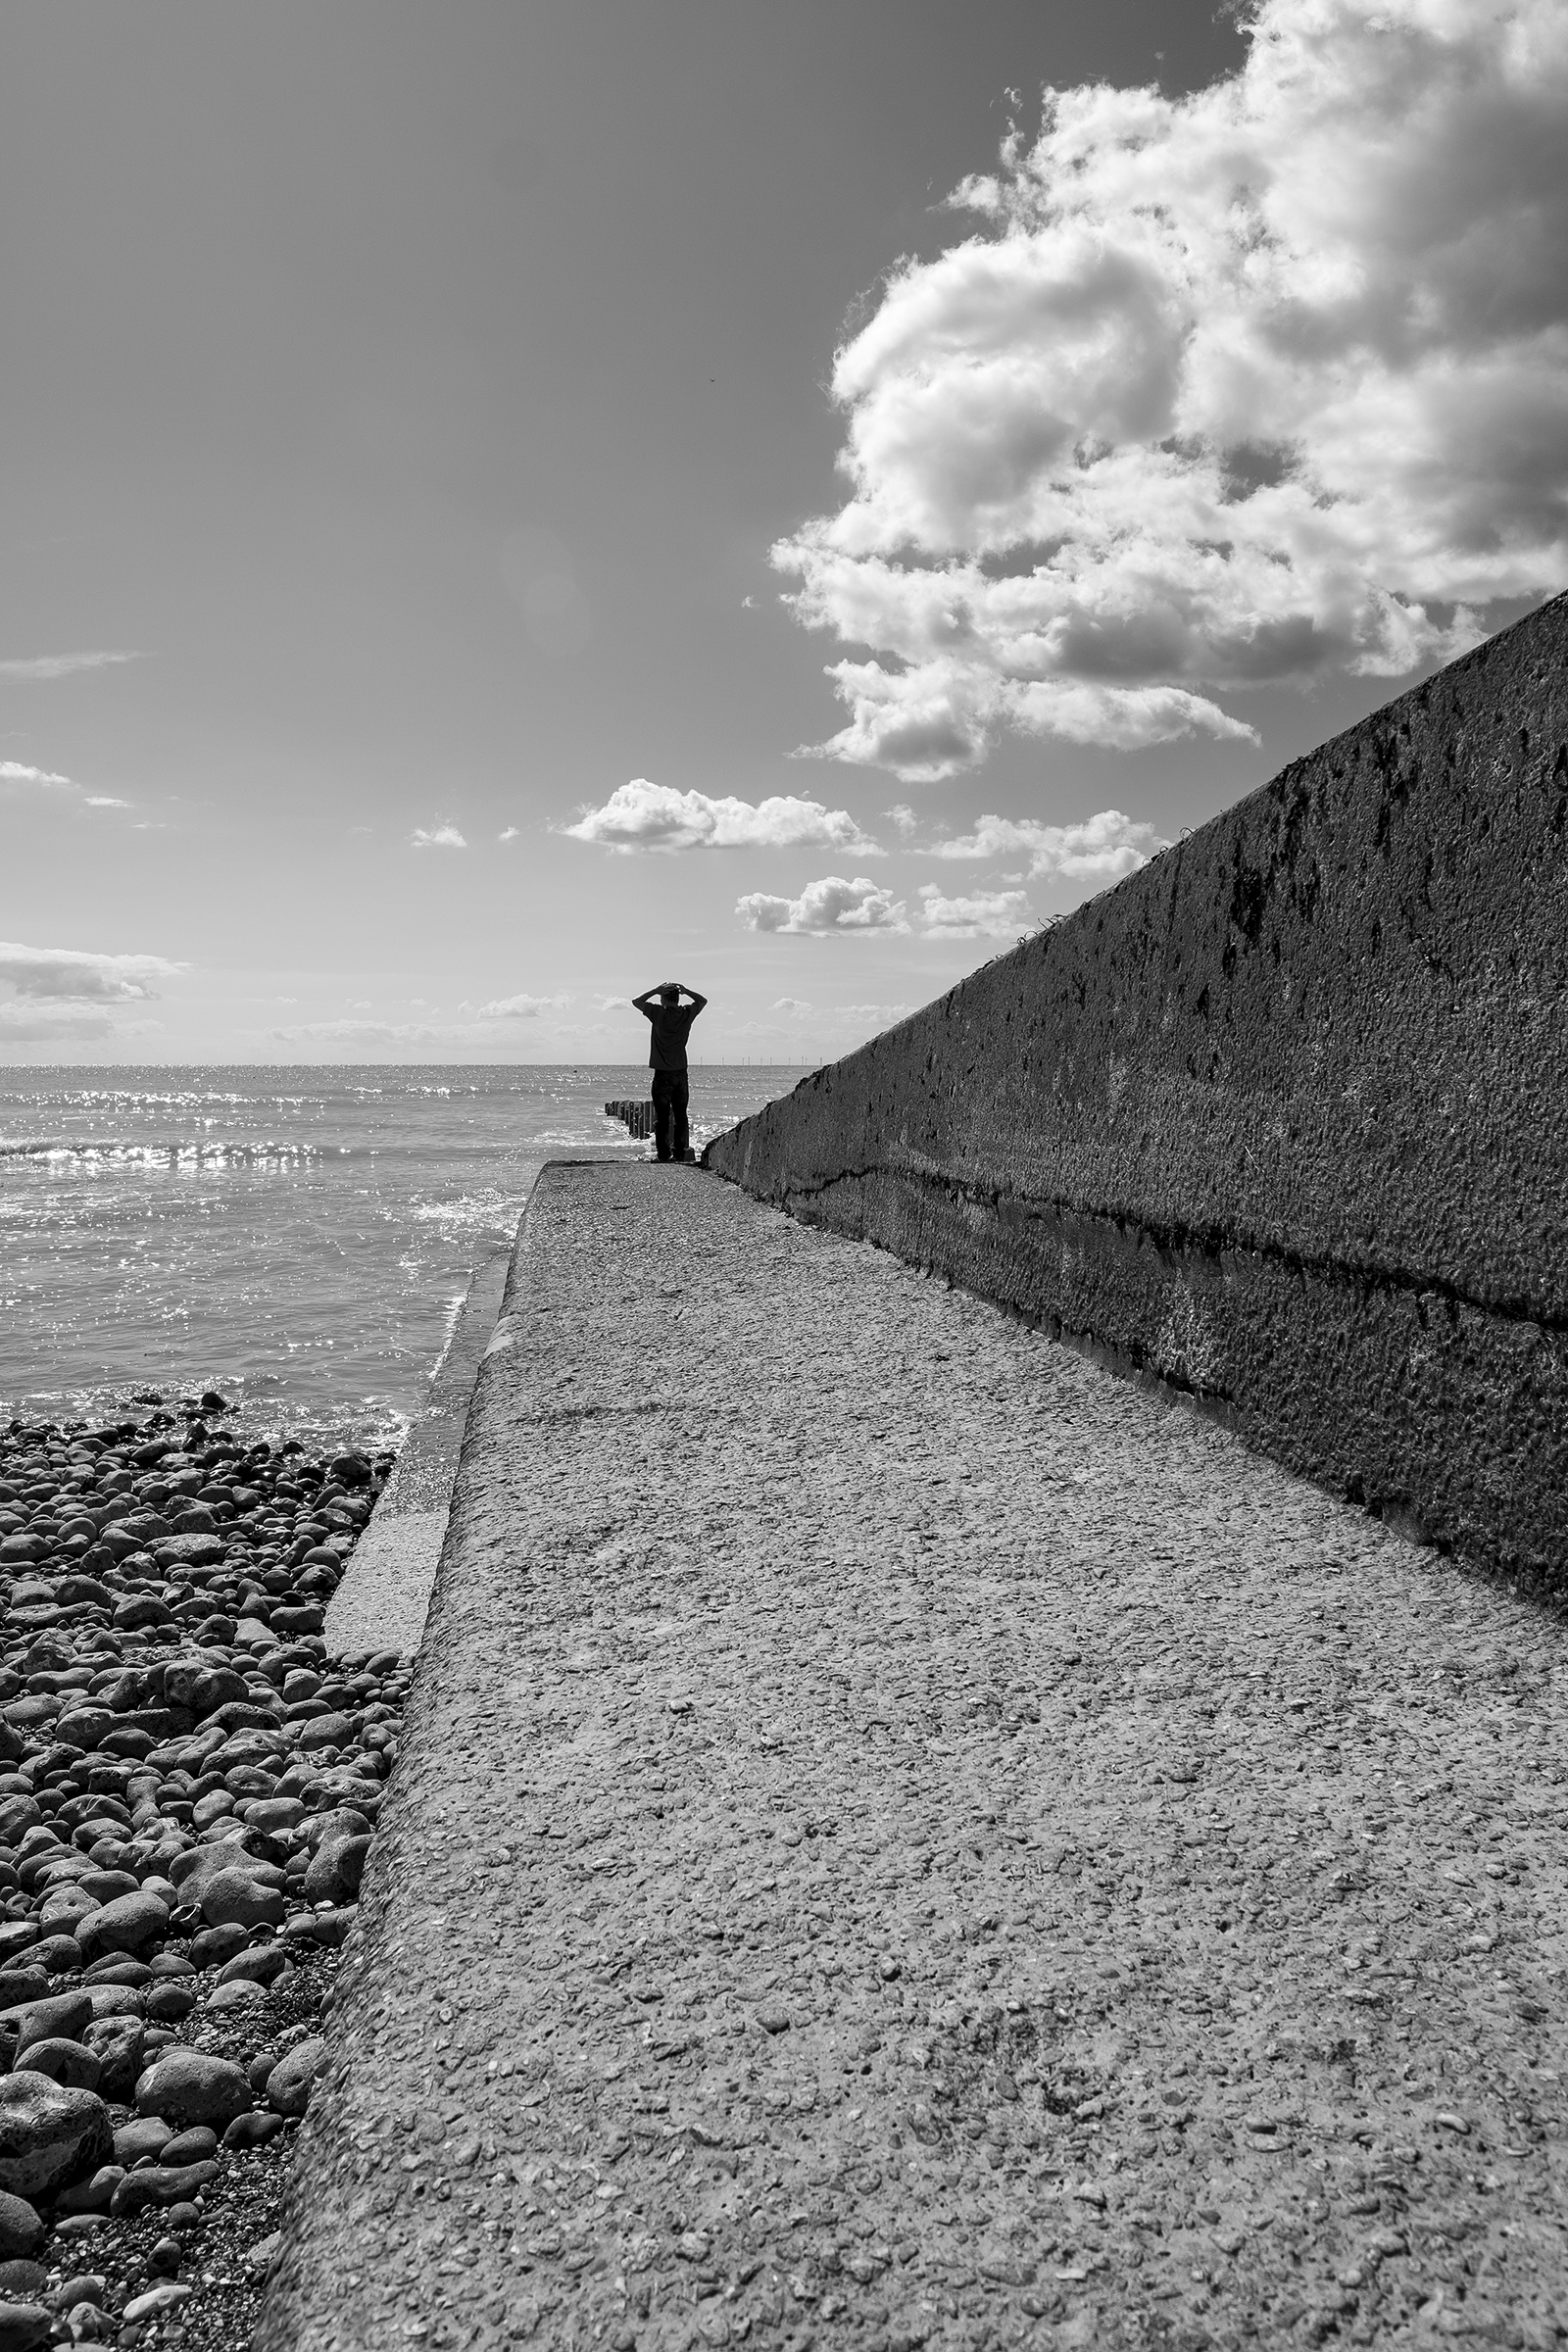 Silhouette of land standing on concrete sea wall groyne with ocean in background Ovingdean East Sussex UK black and white portrait ©P. Maton 2019 eyeteeth.net